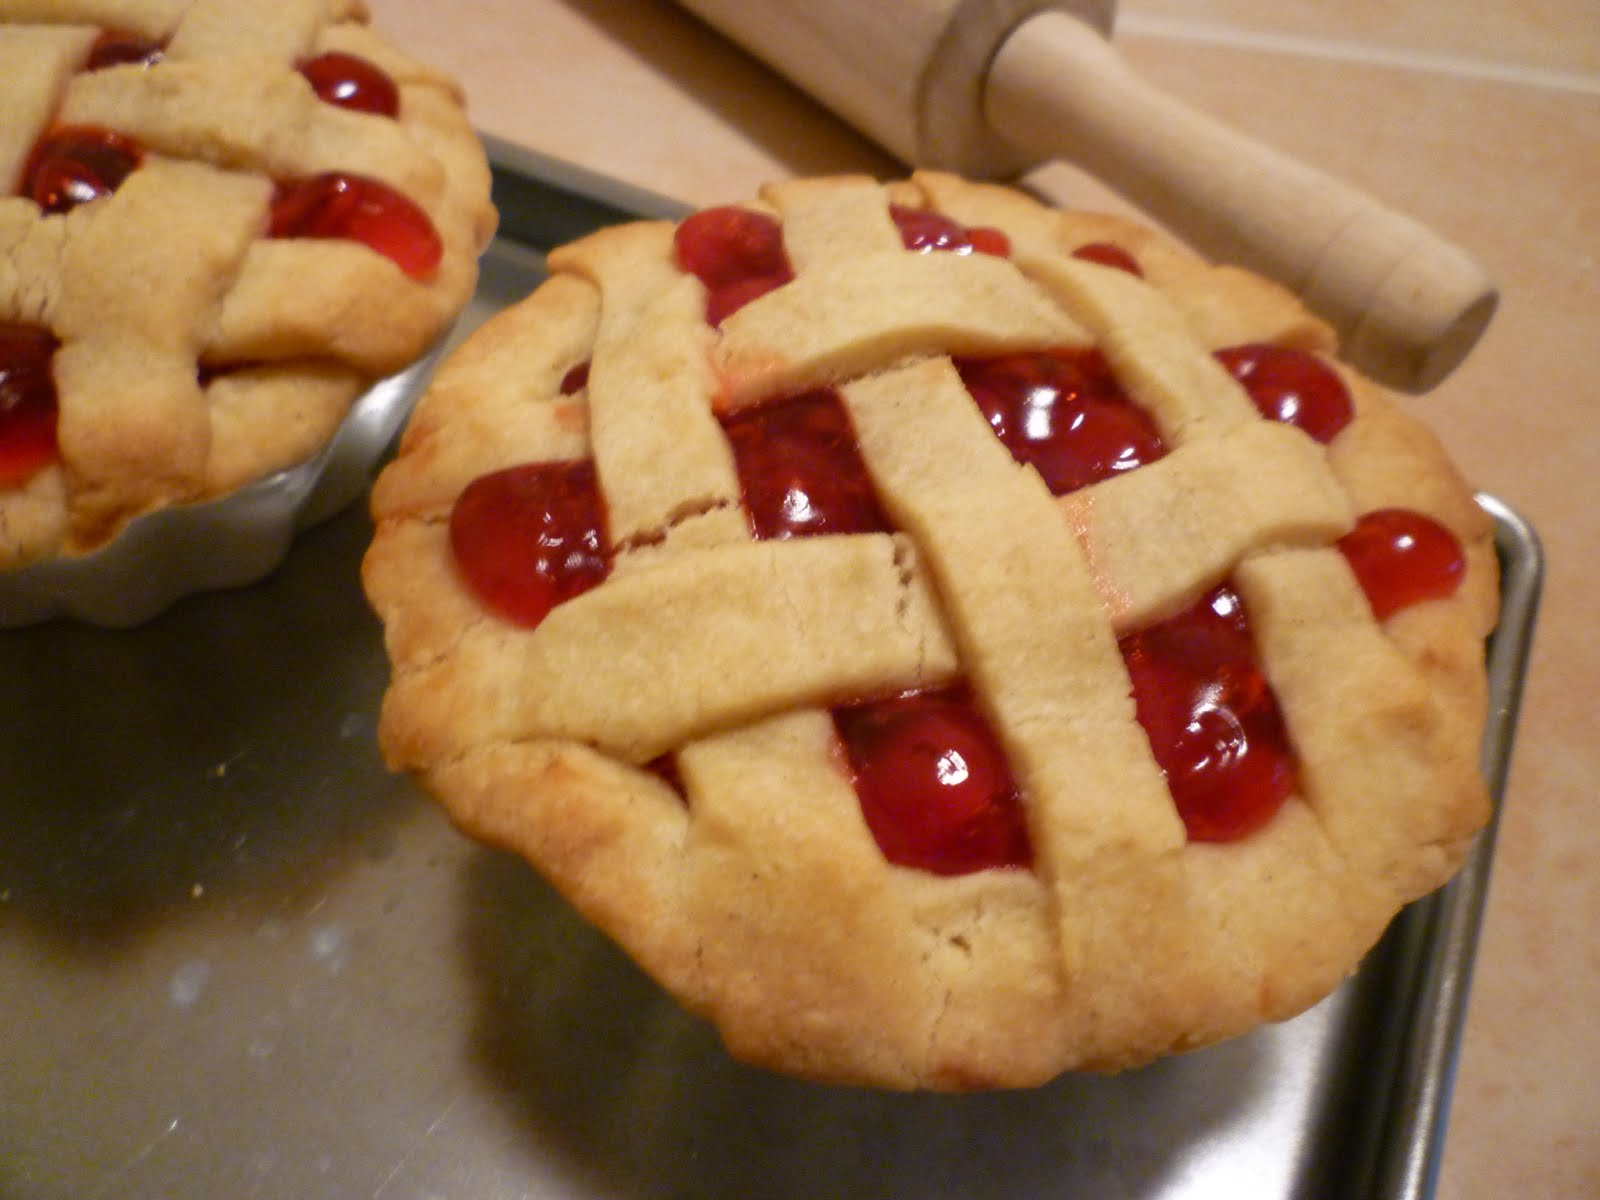 It's National Pie Day! What's Your Favorite Pie? - Page 5